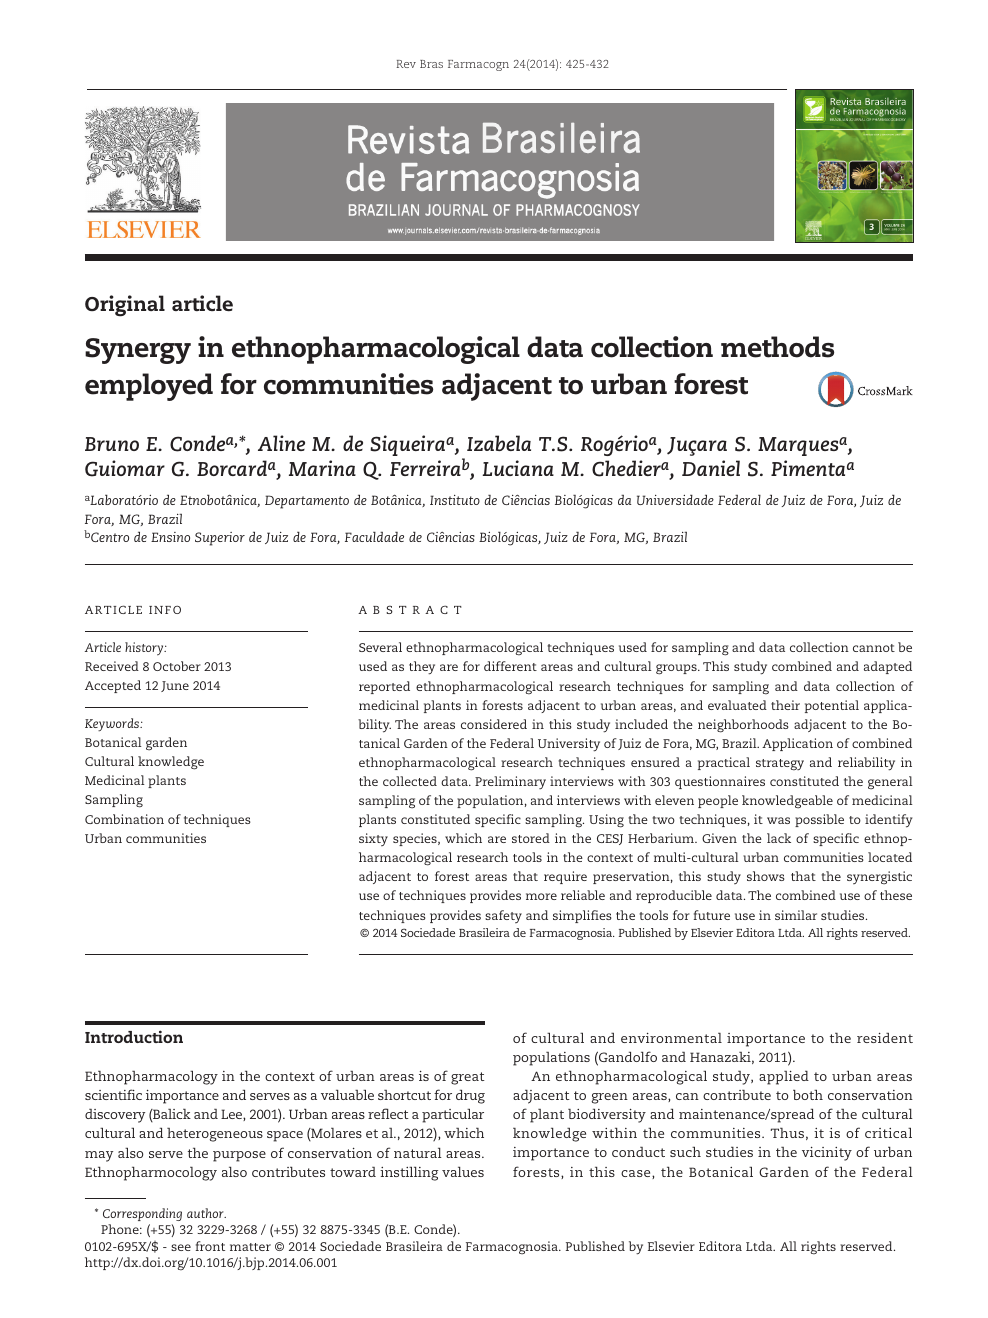 Synergy in ethnopharmacological data collection methods employed for